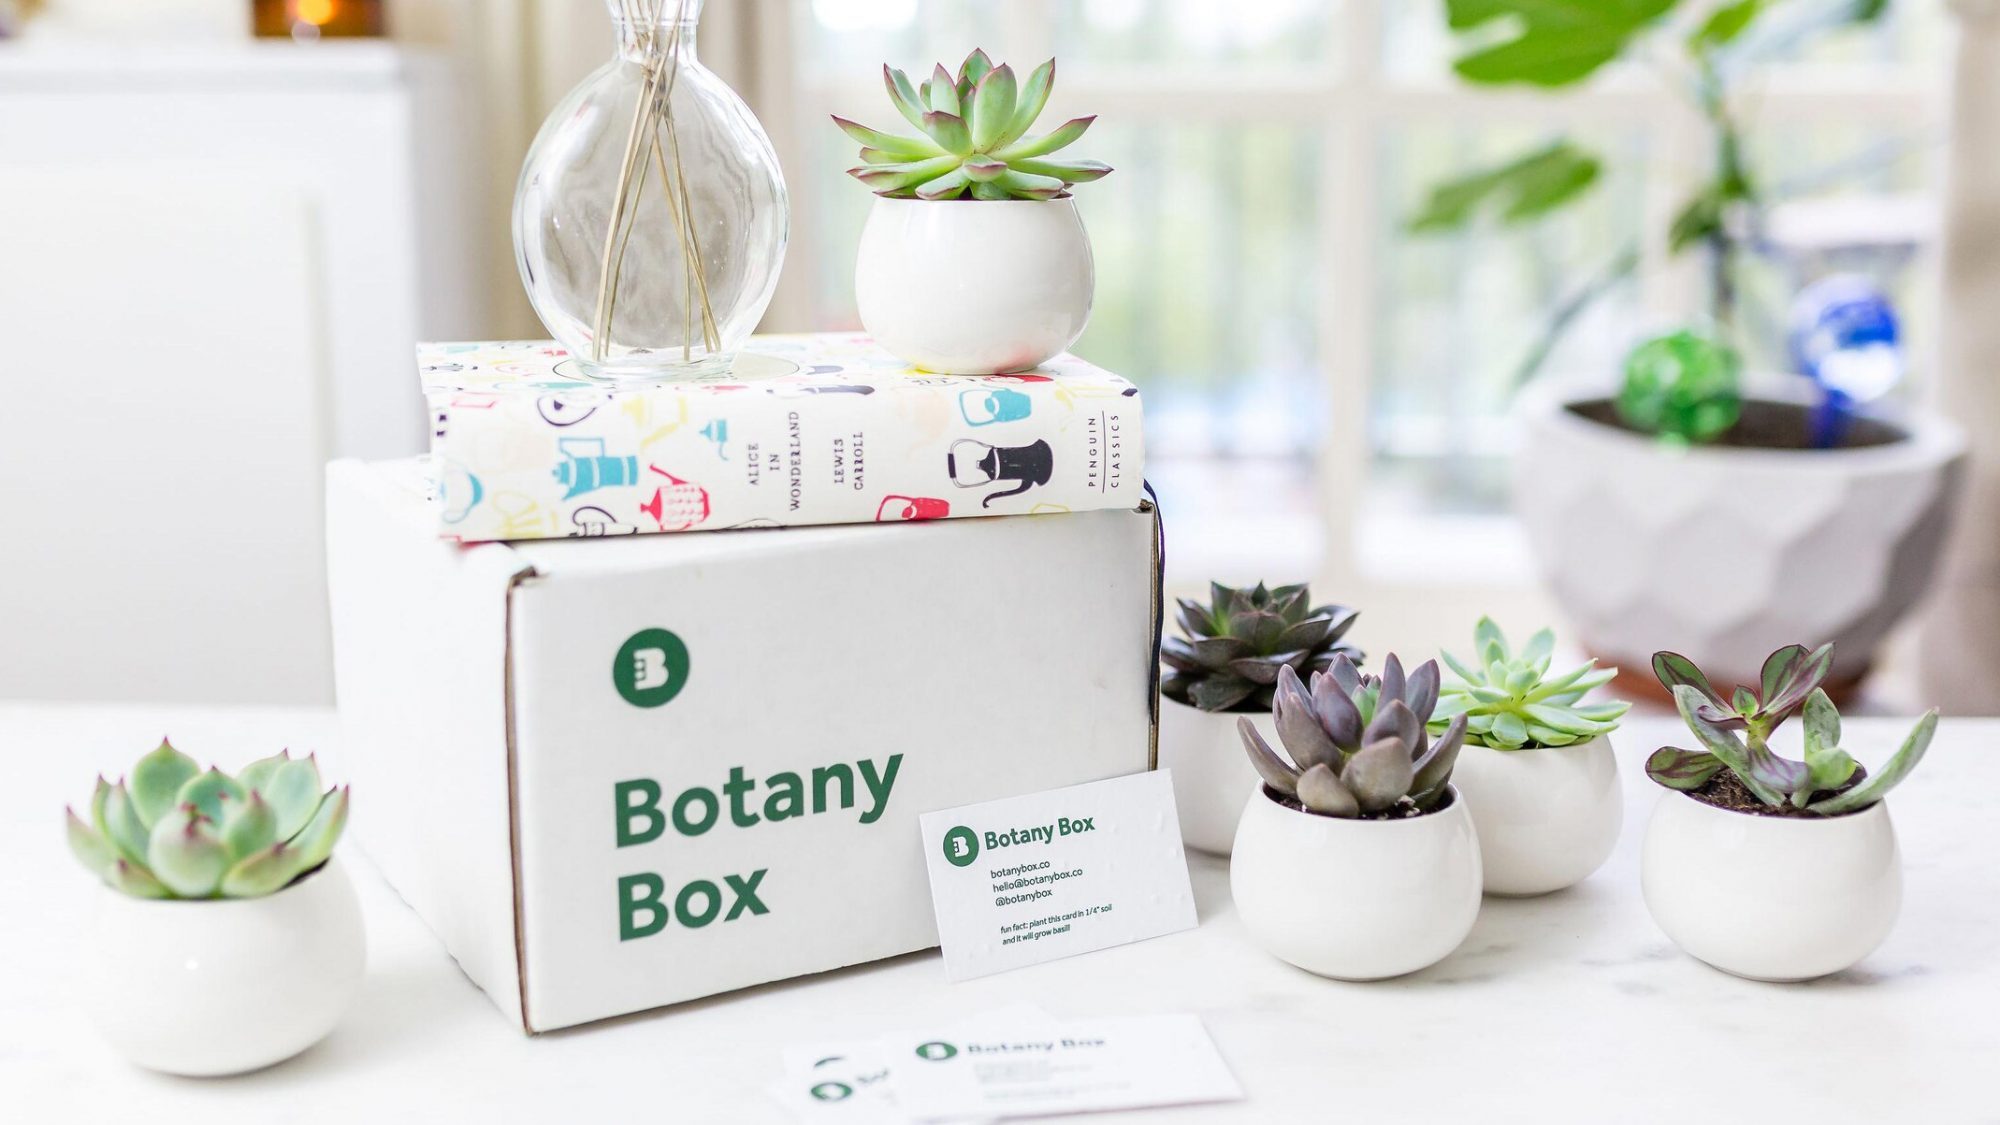 Gifts for plant lovers, plant gift ideas - Botany Box succulents